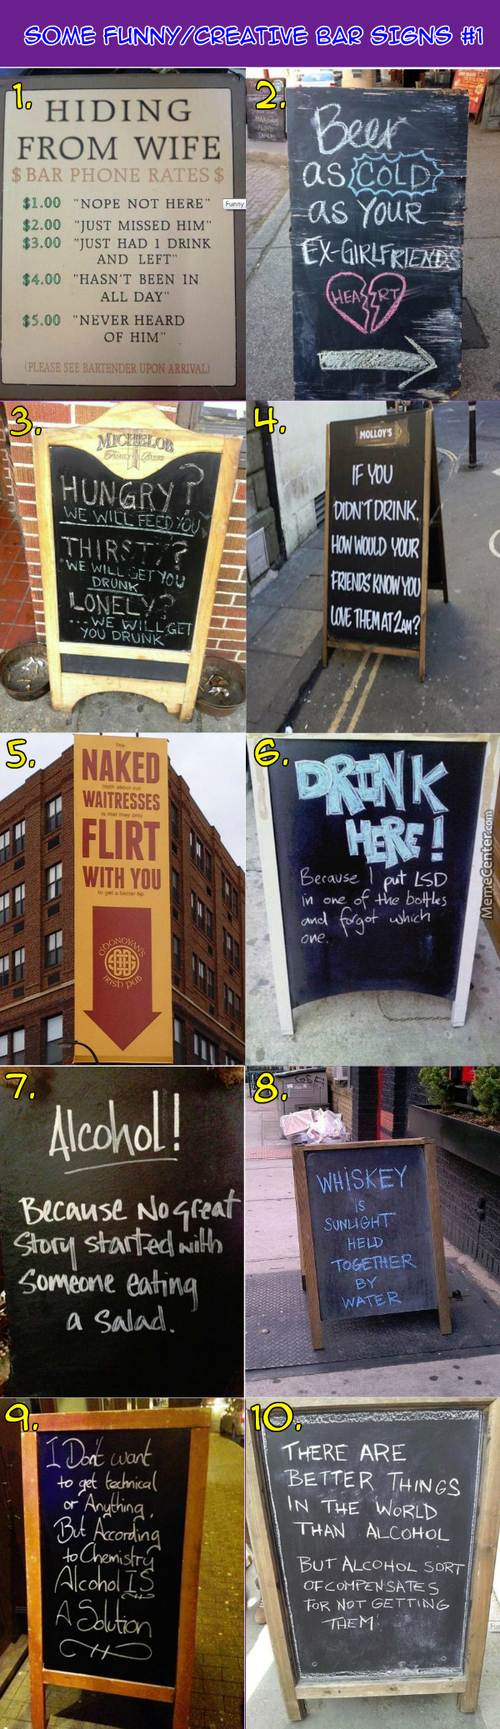 Funny / Creative Bar Signs #1: When Chemistry Is Applied, Beer Is A Solution!